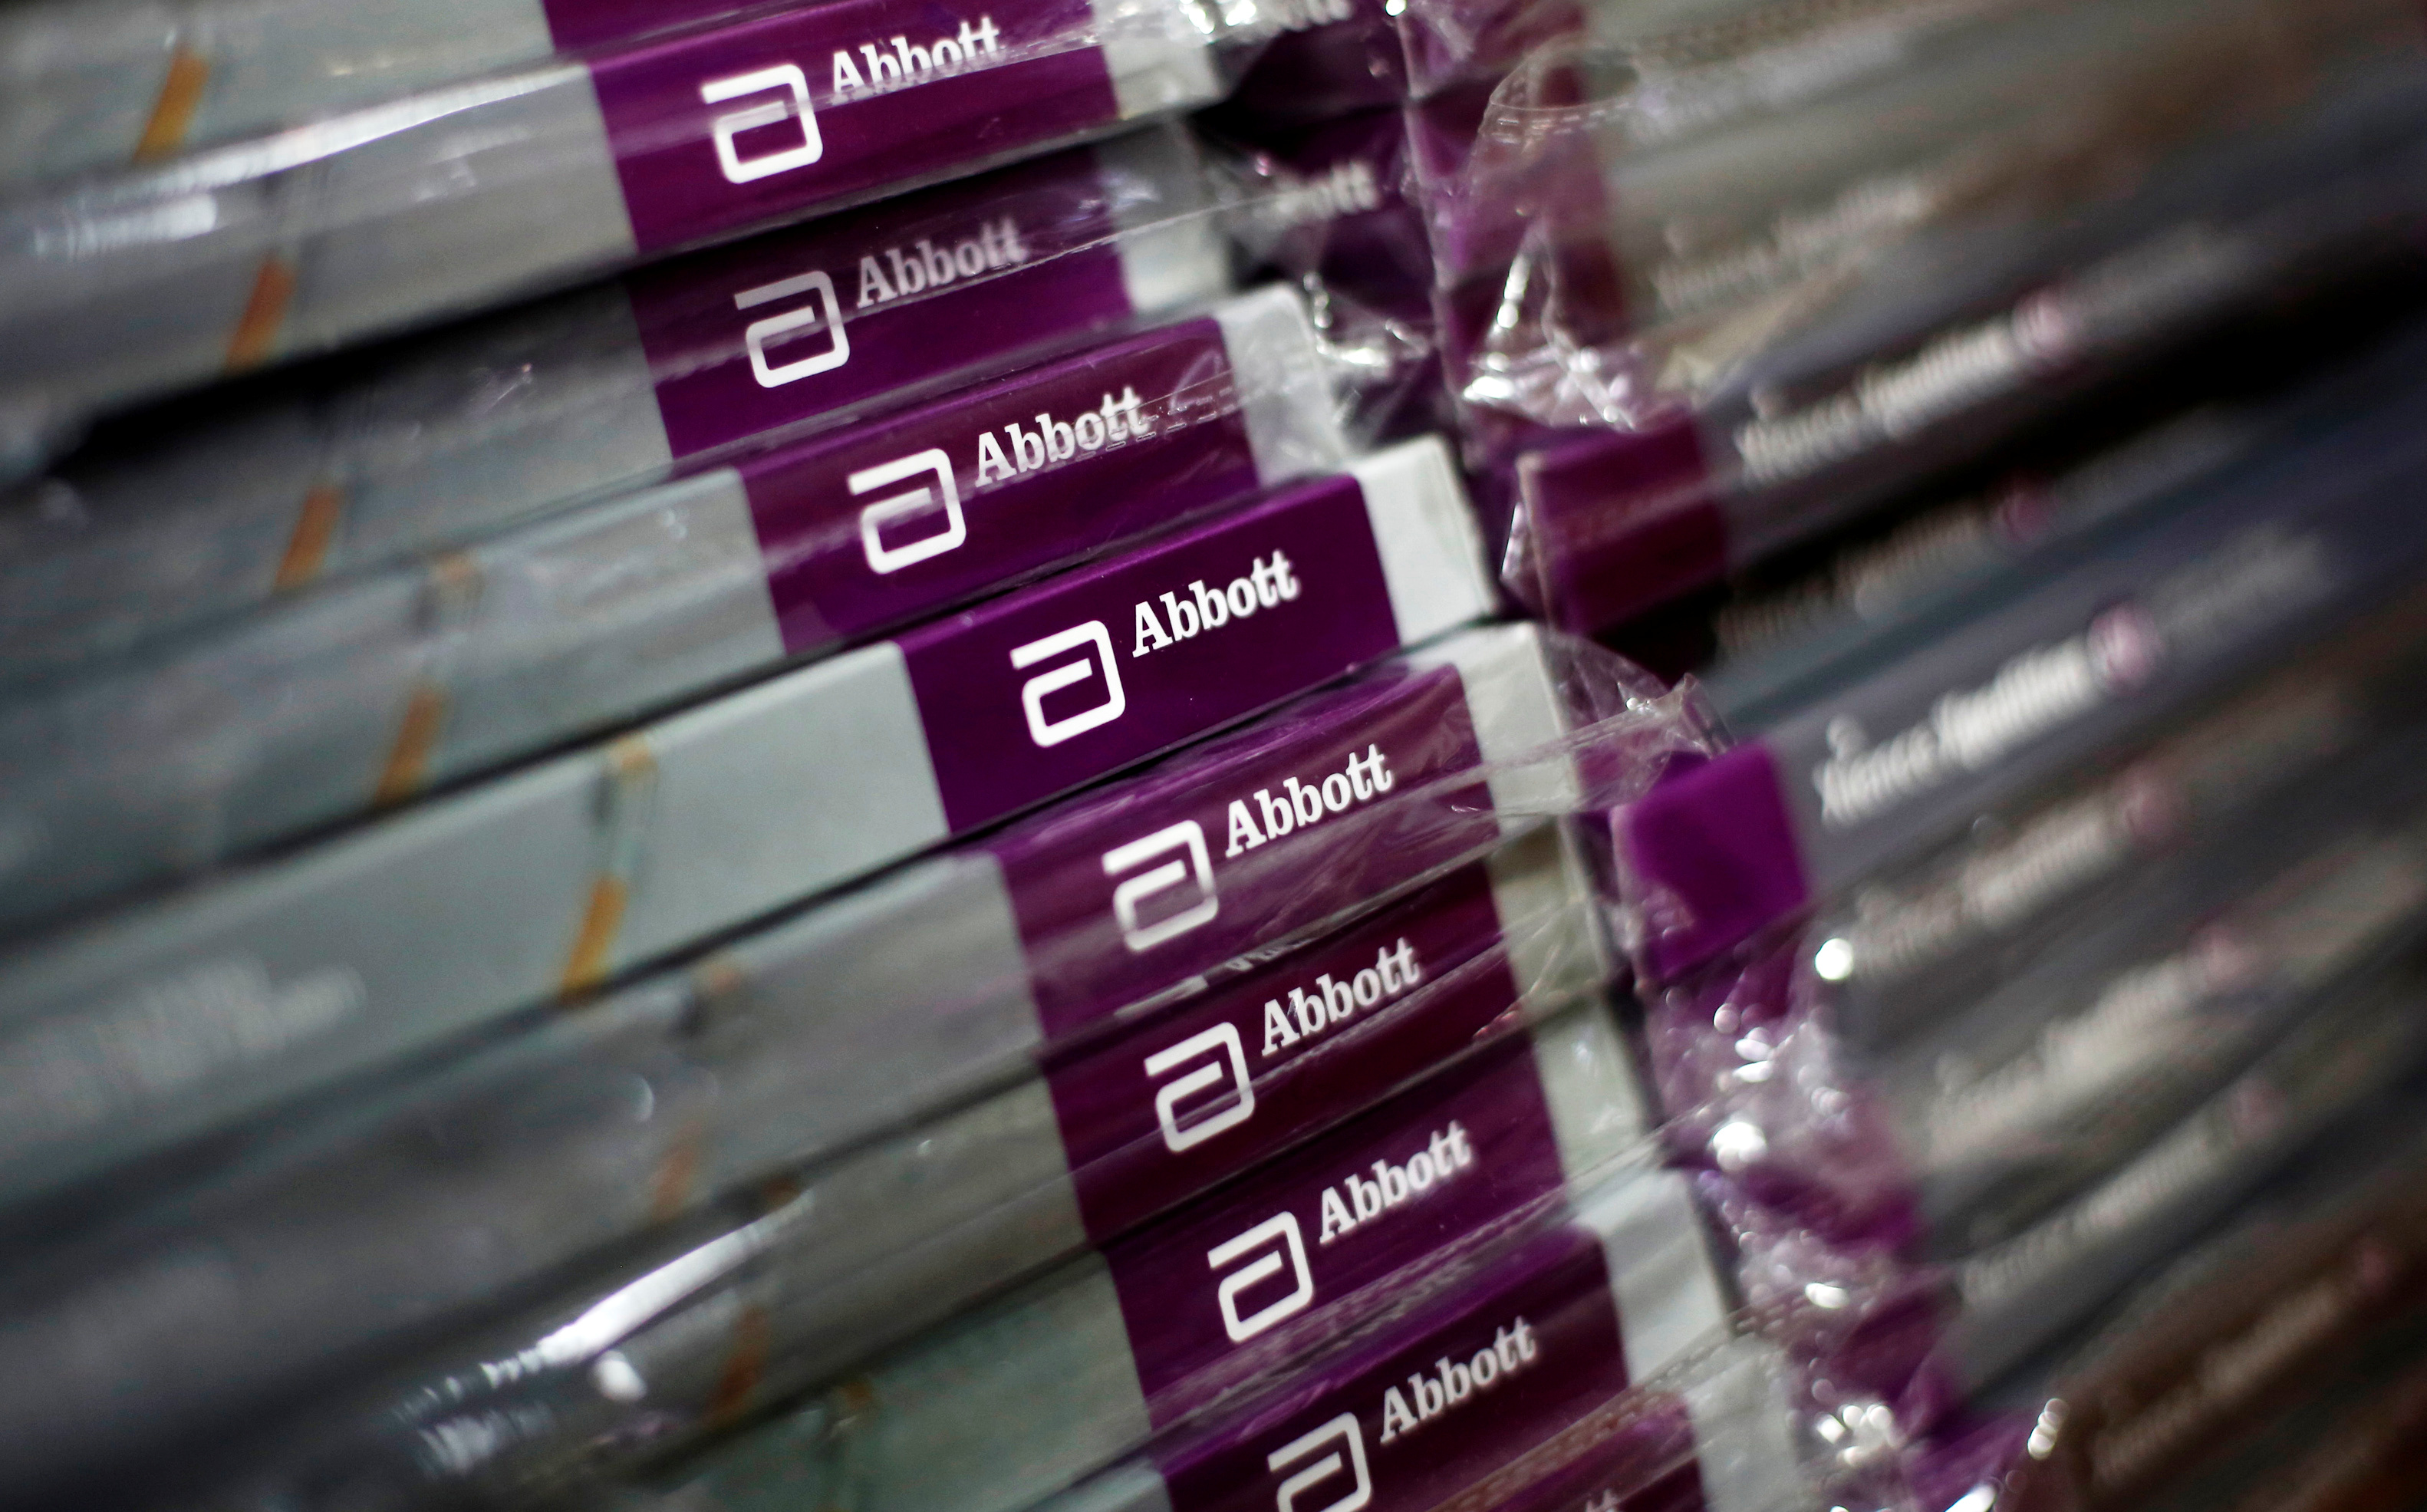 Boxes of Abbott's heart stents are pictured inside a store at a hospital in New Delhi, India, April 27, 2018. Picture taken April 27, 2018. REUTERS/Adnan Abidi